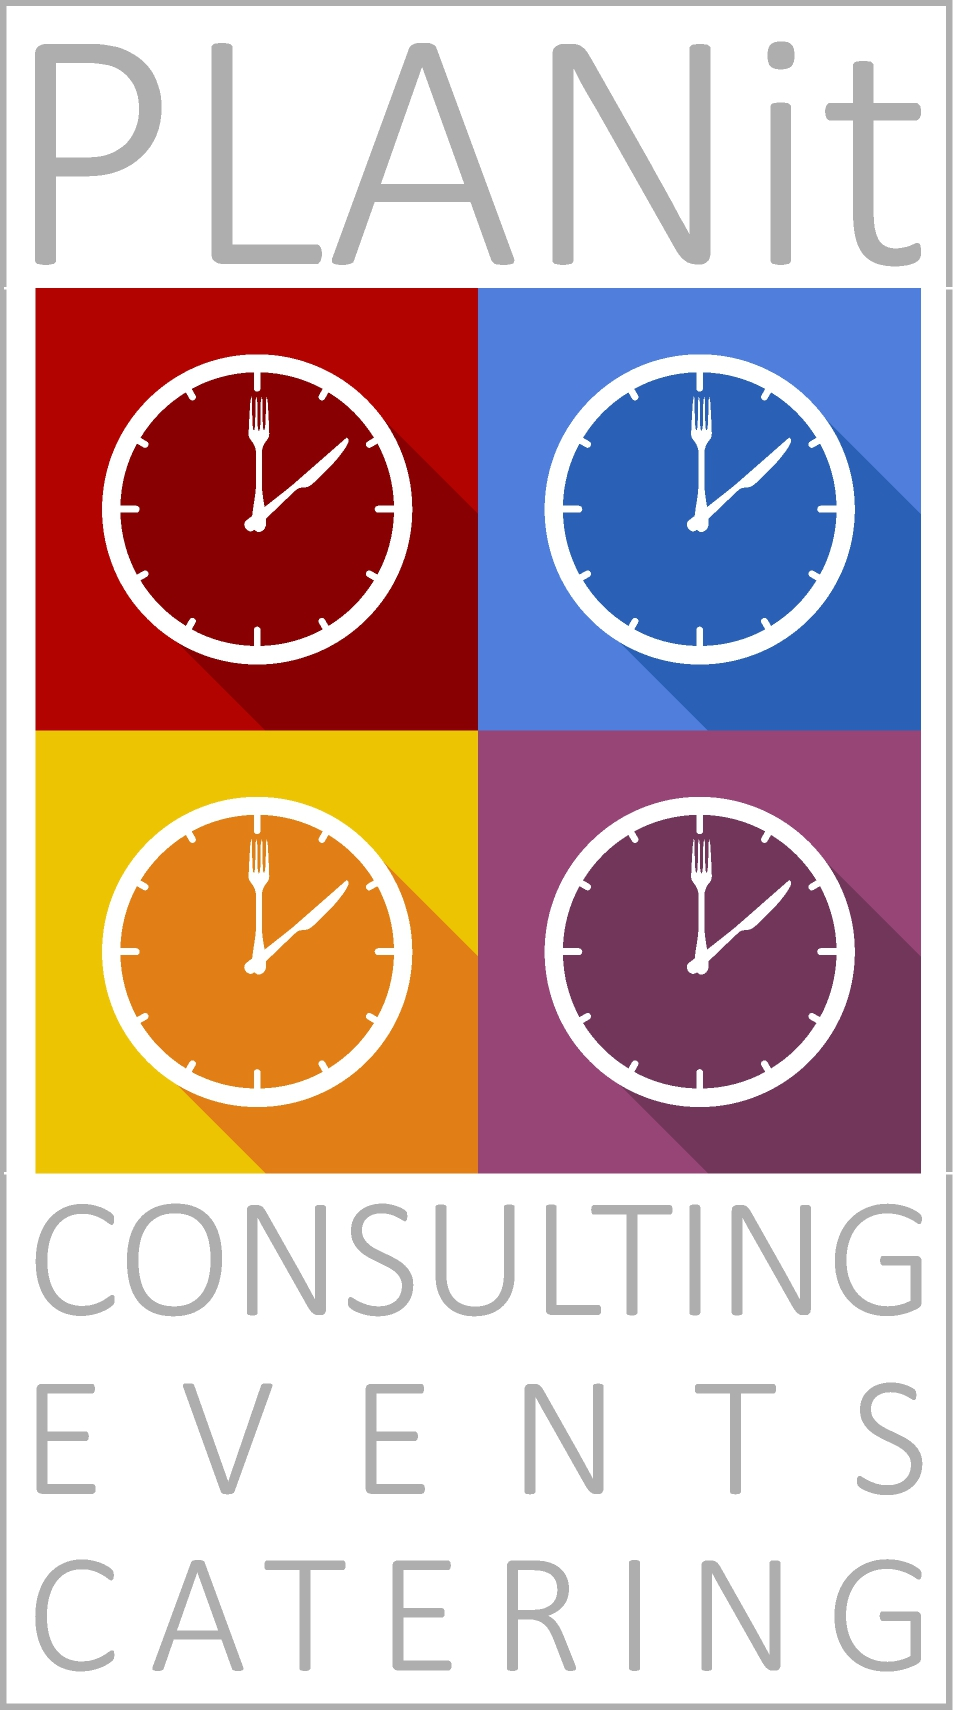 PLANit UG - Consulting, Events, Catering